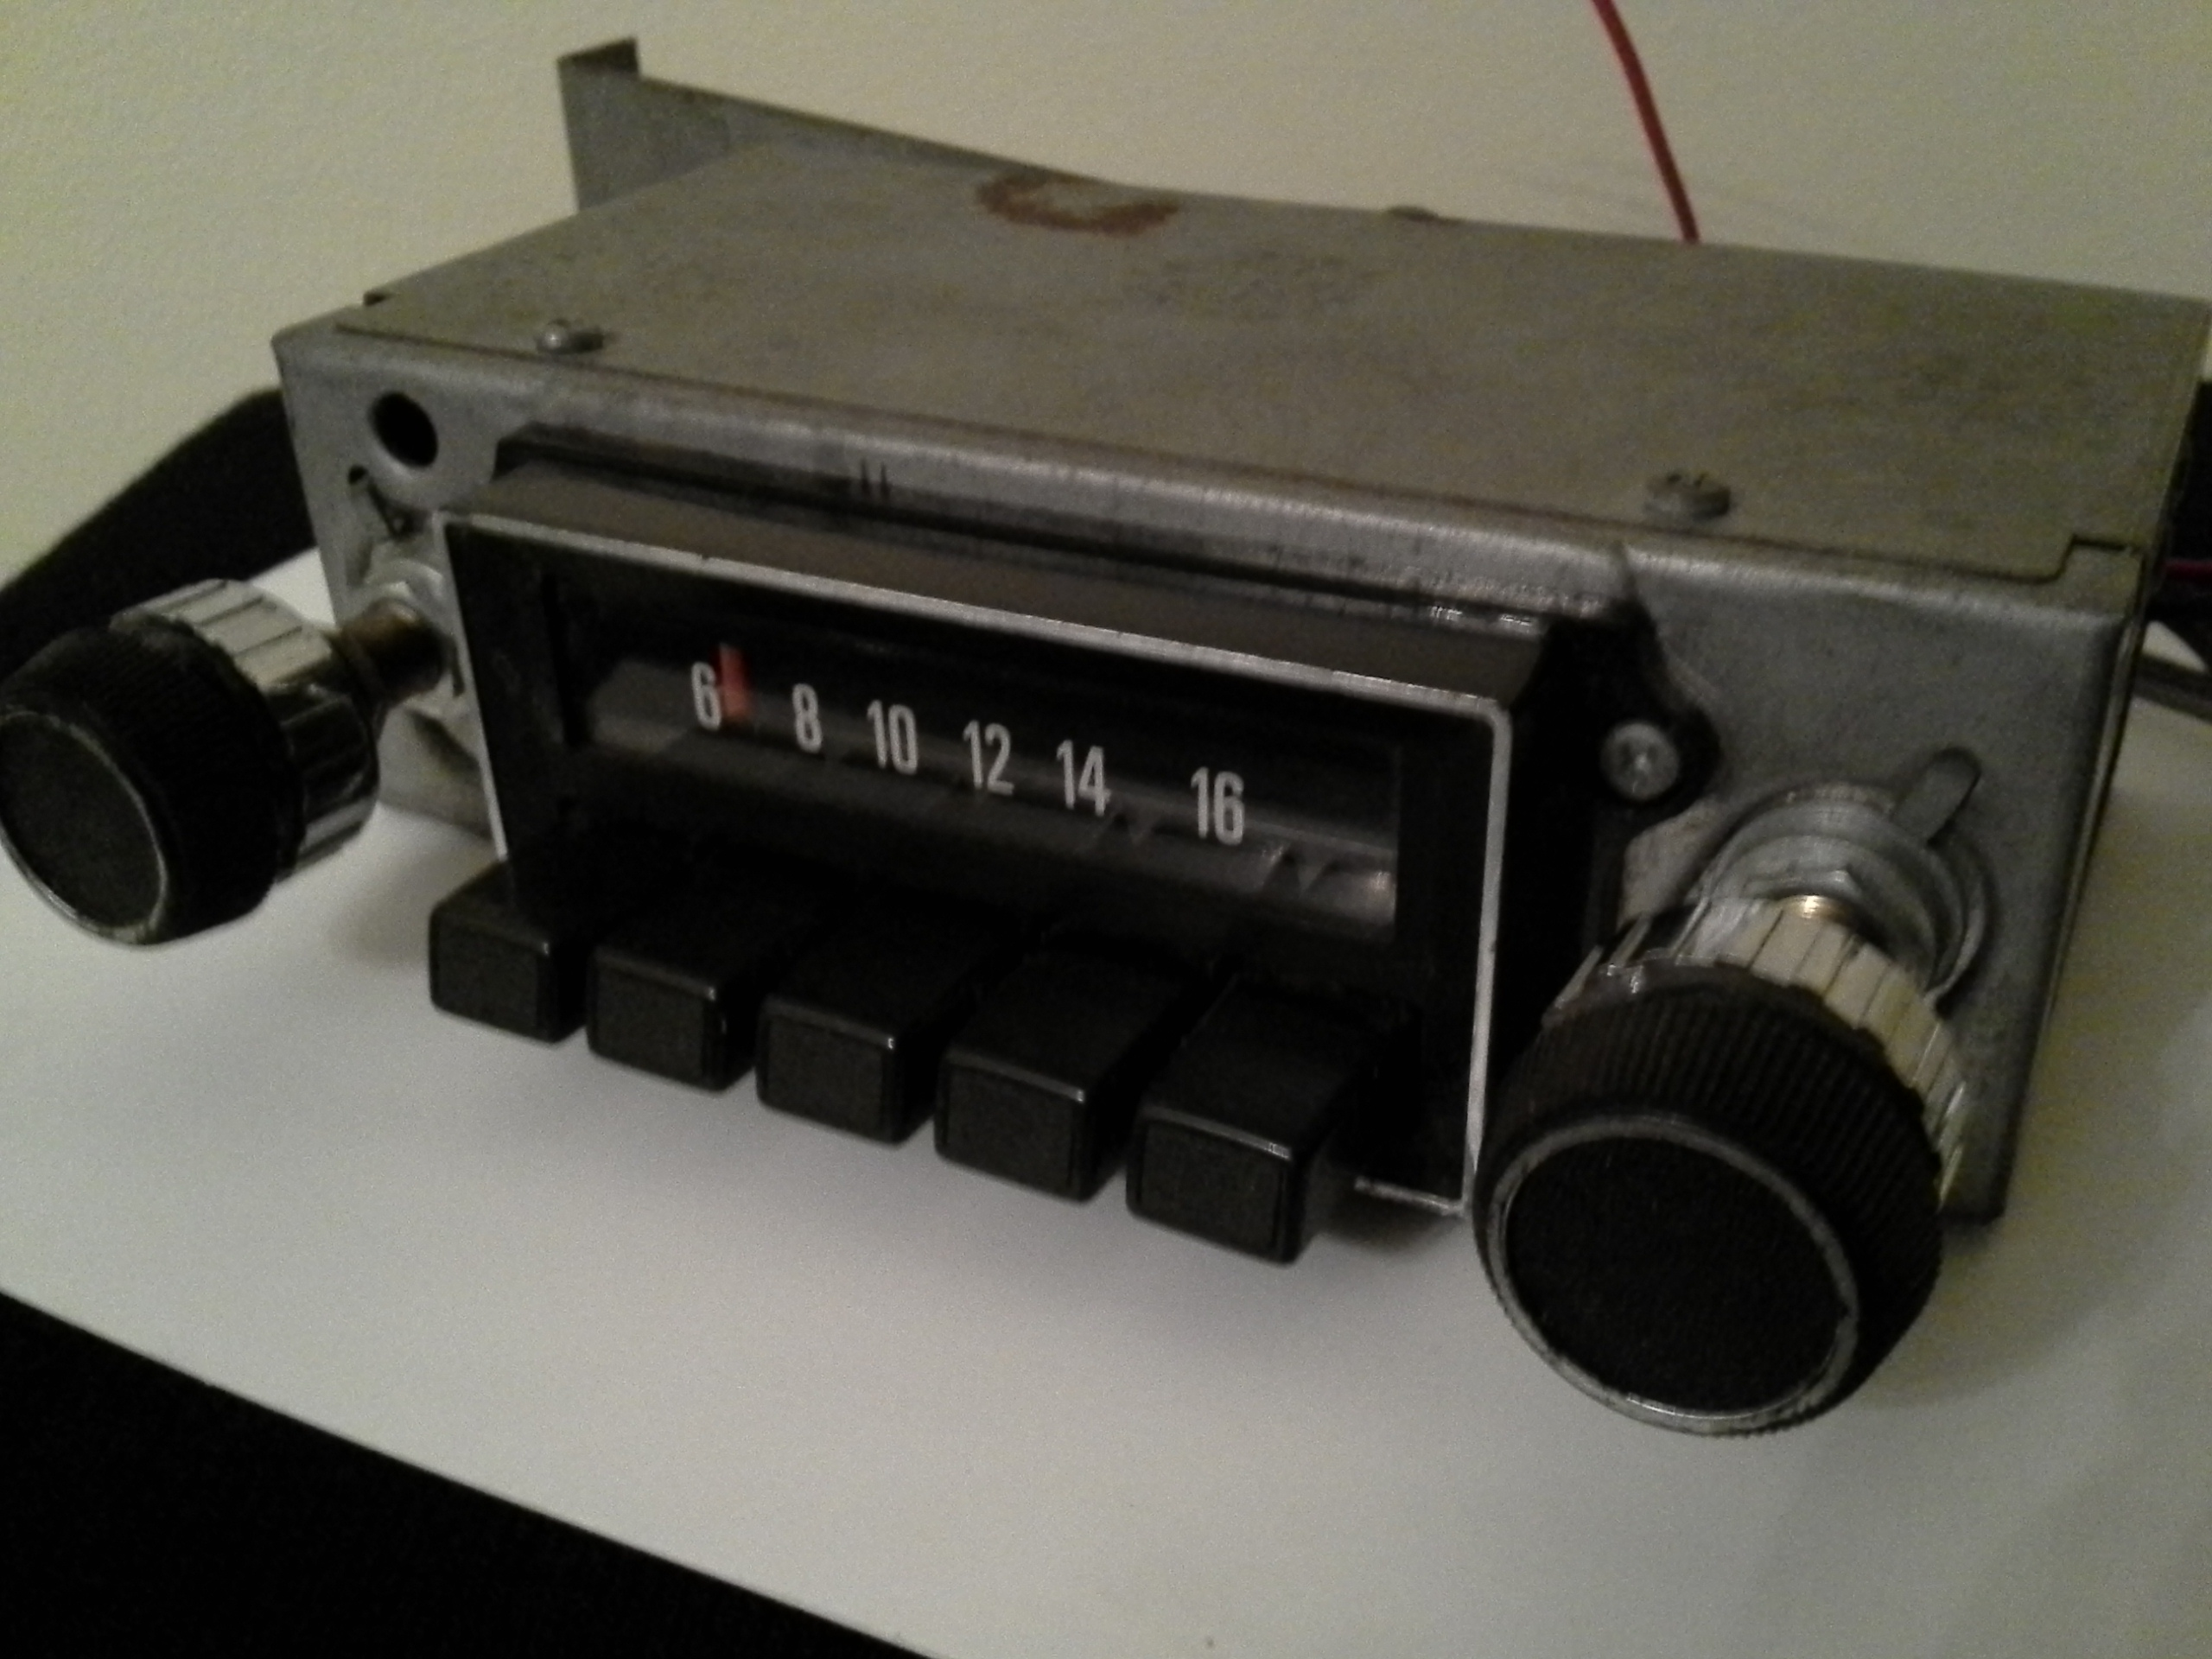 Aftermarket 1970s AM Radio, serviced and tested